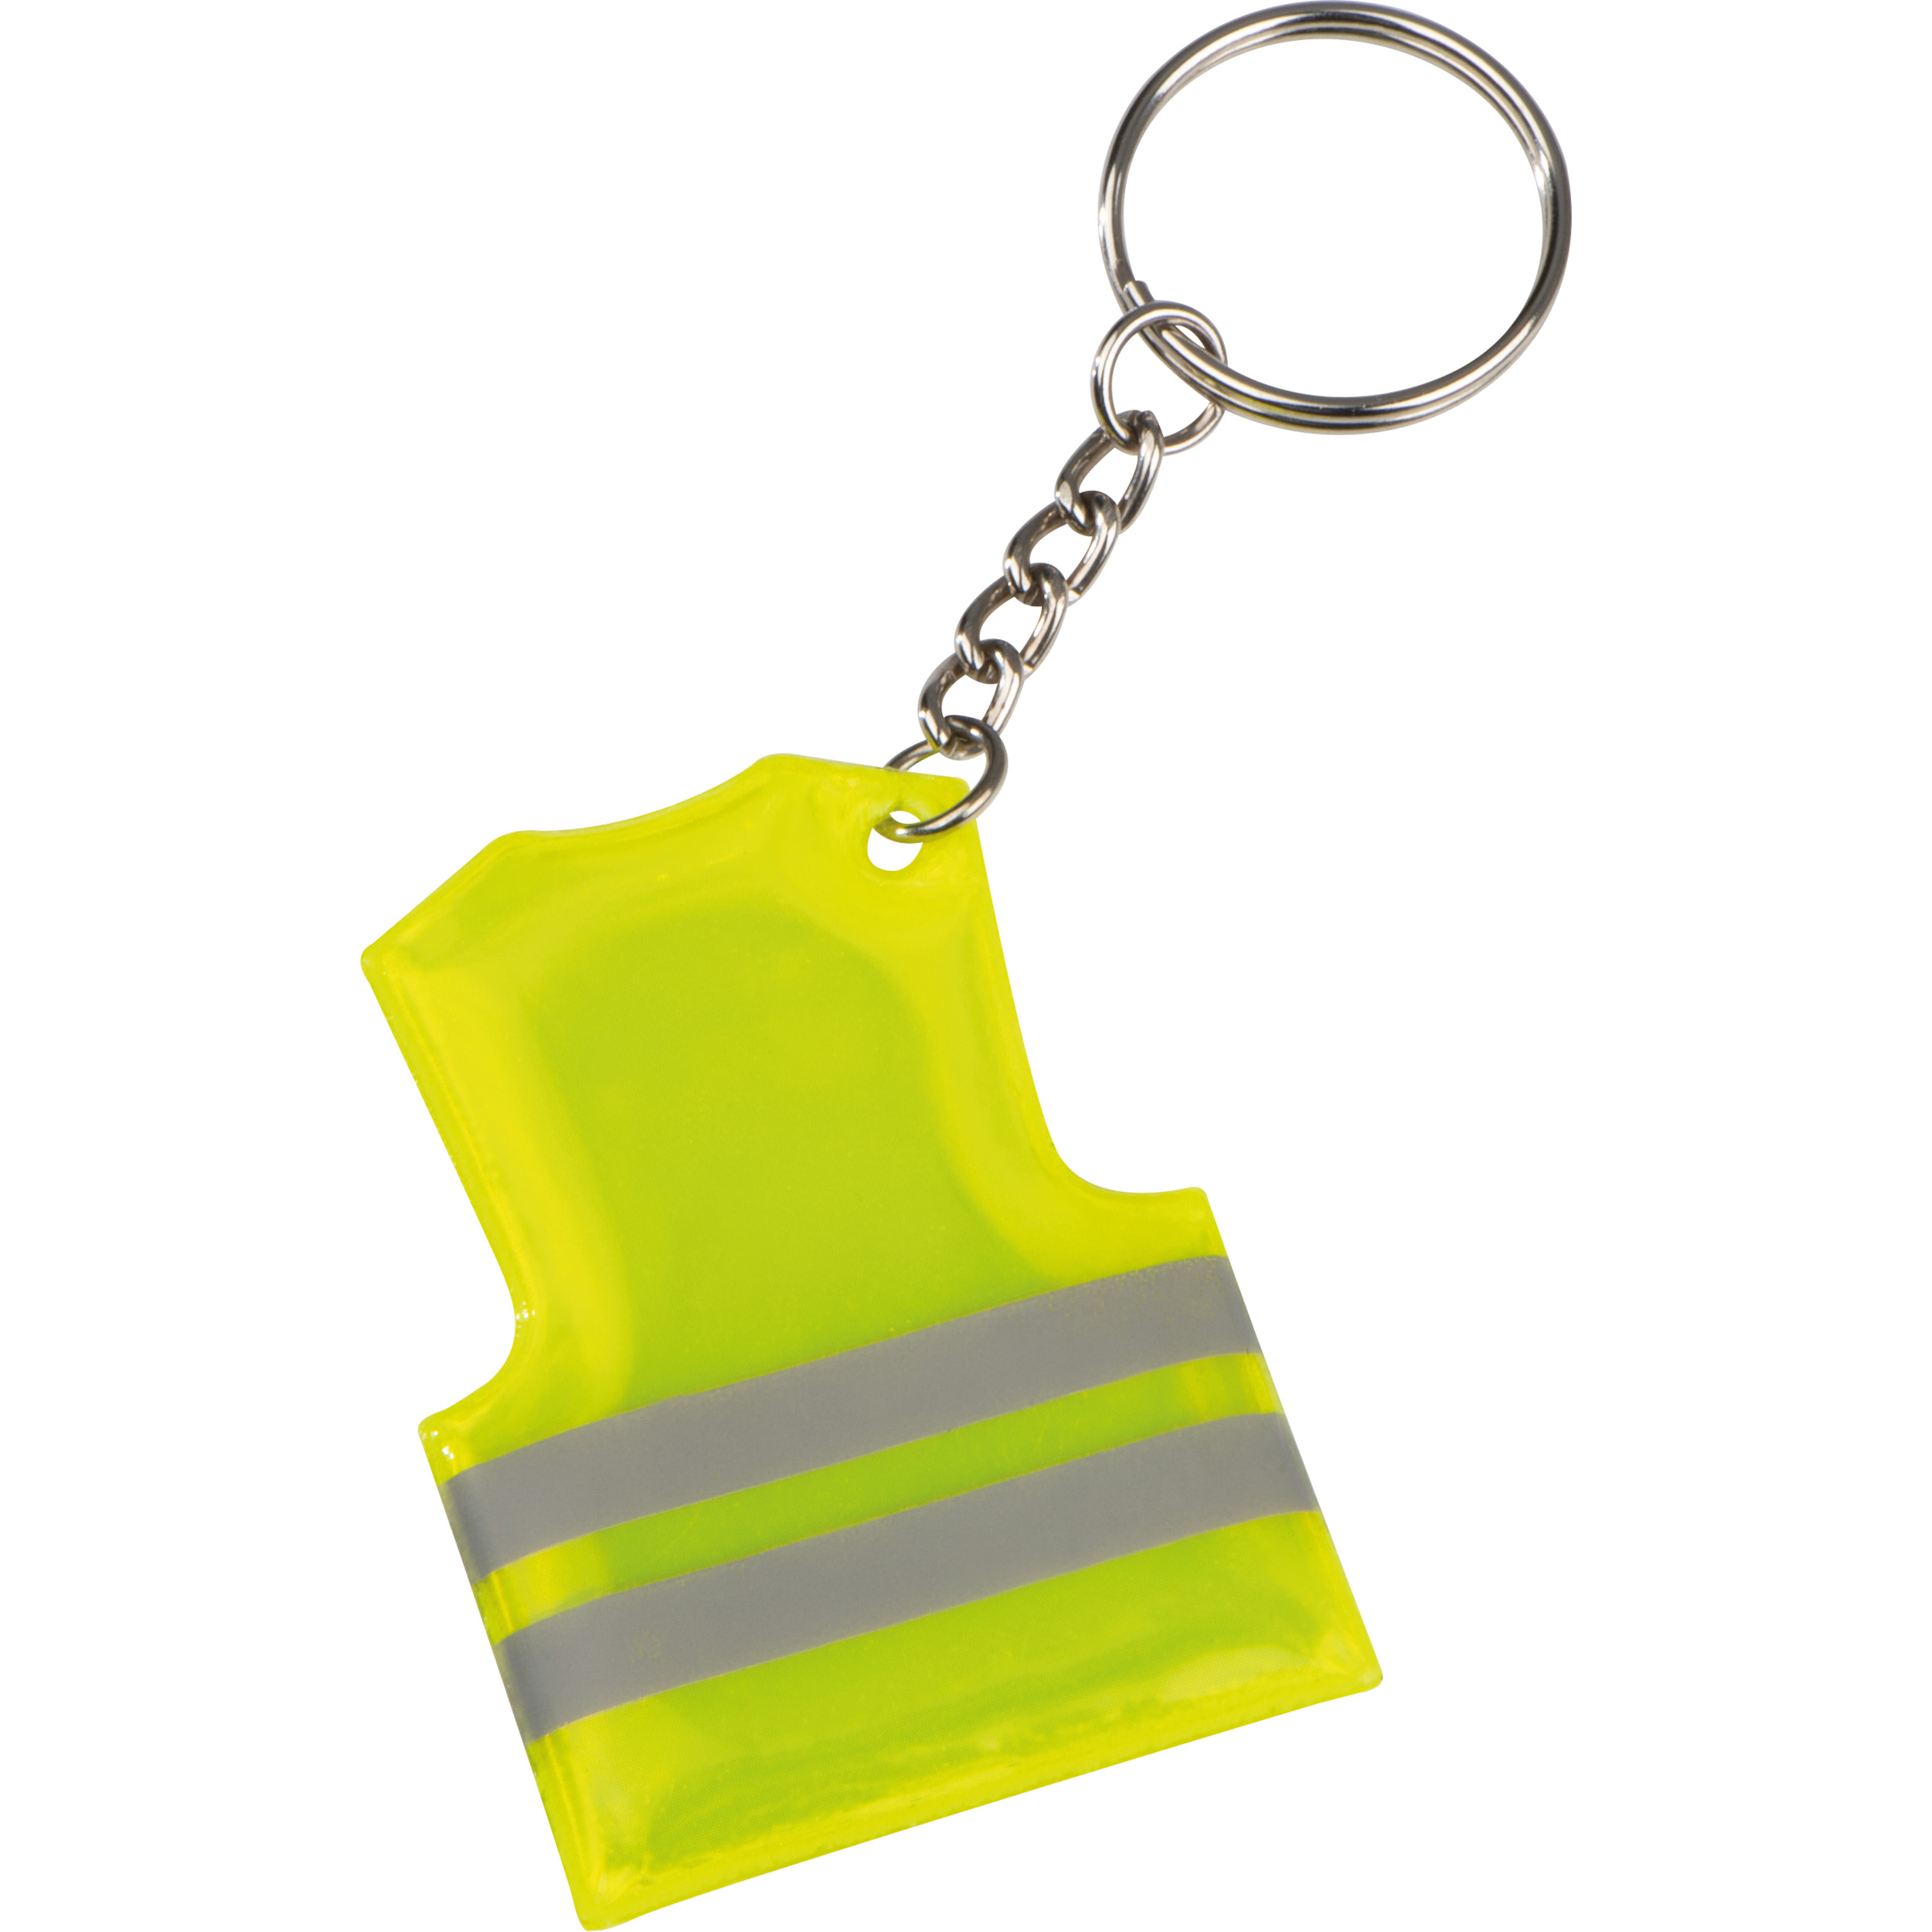 Key fob in the shape of a safety vest